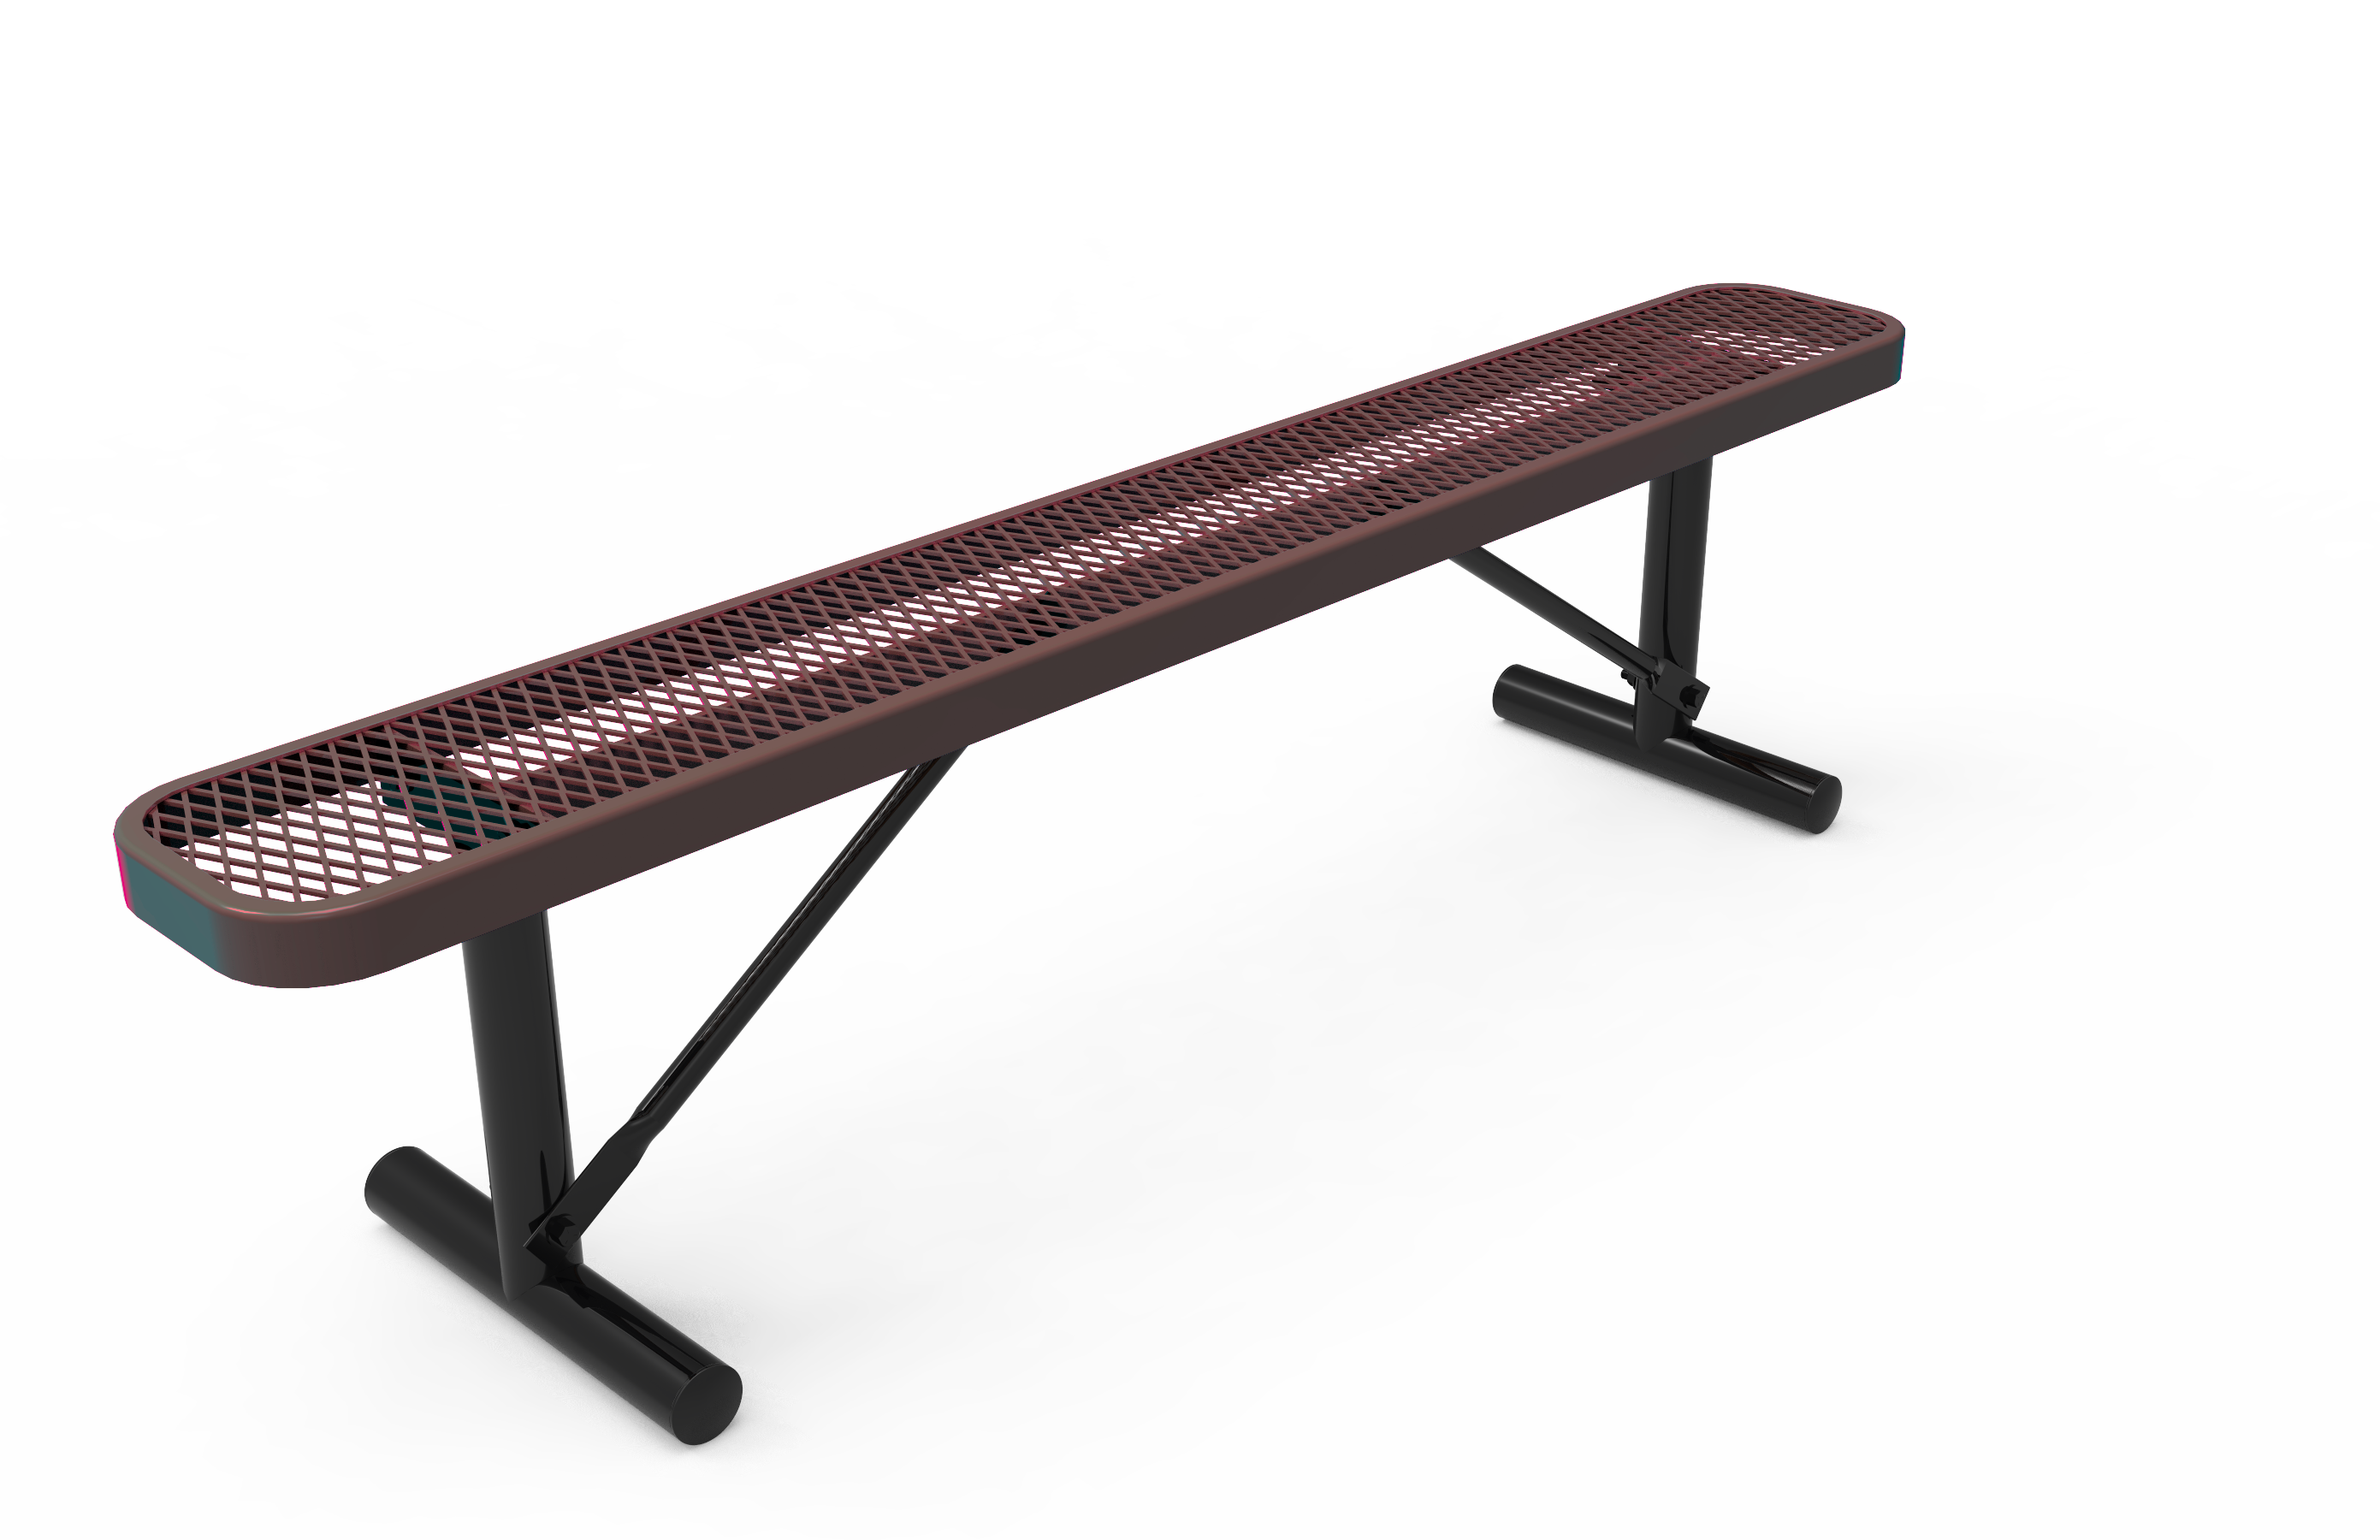 8-Ft. Park Bench without Back